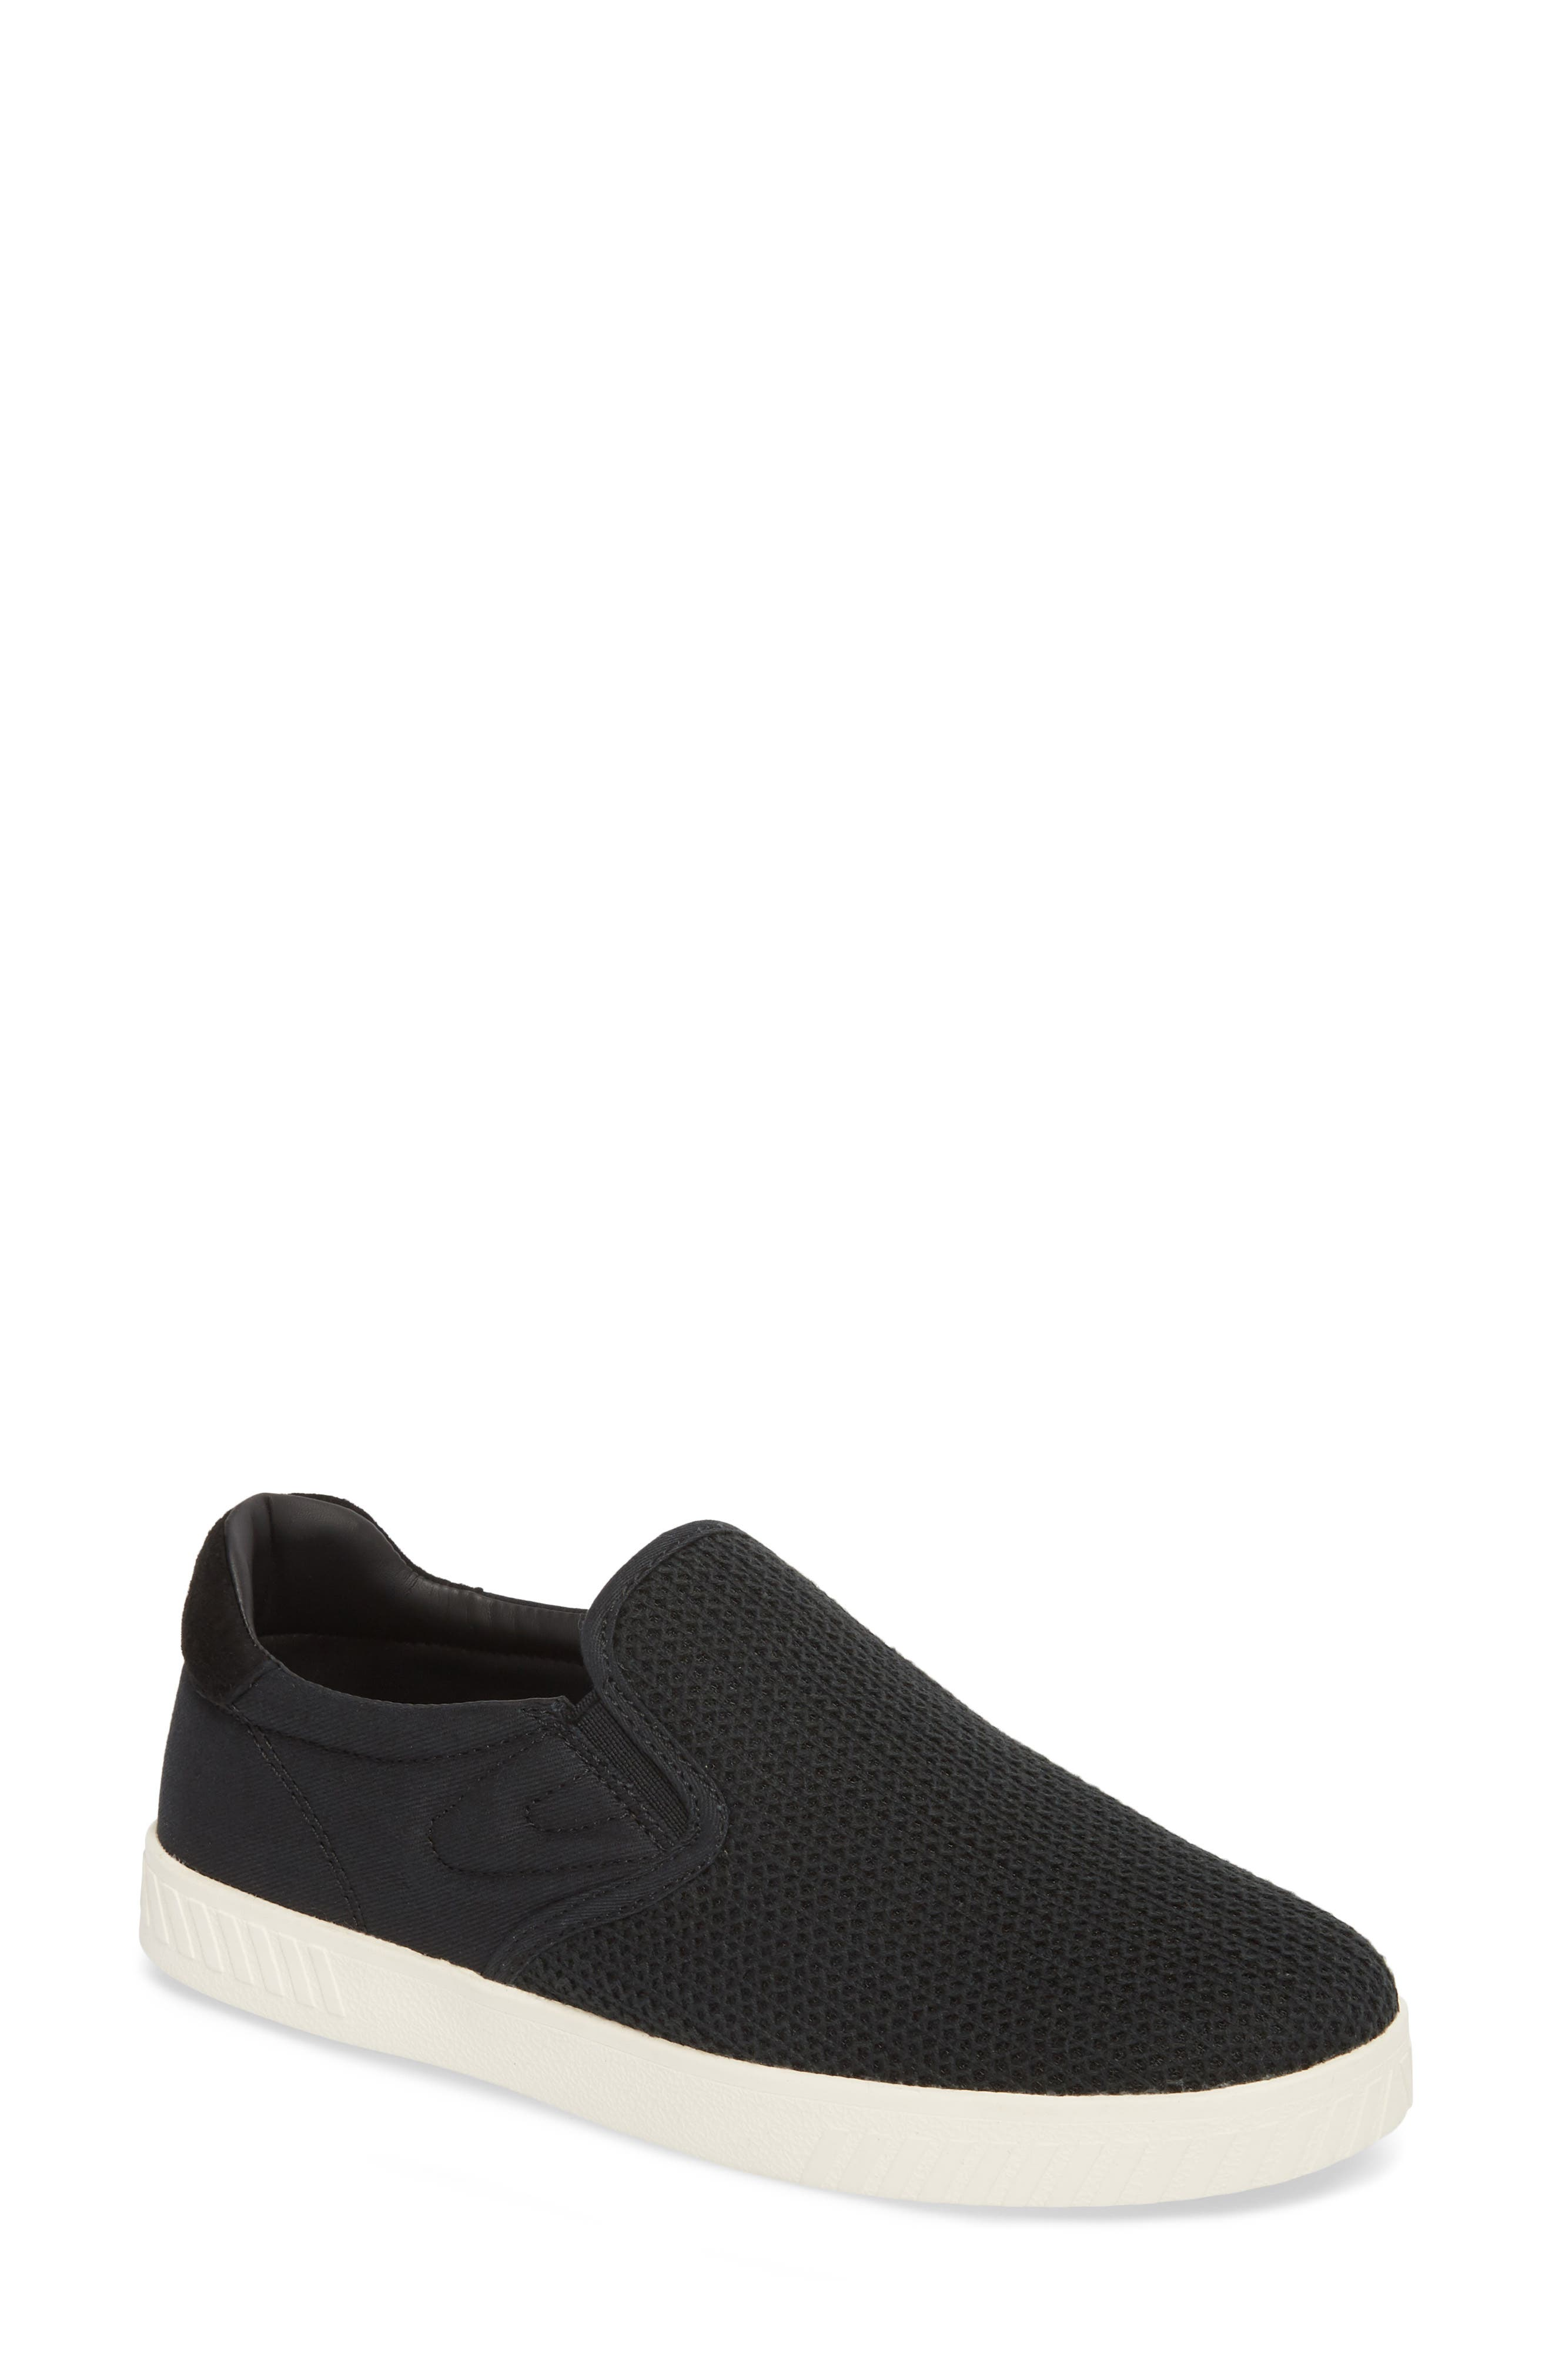 Cruz Mesh Slip-On Sneaker,                         Main,                         color,